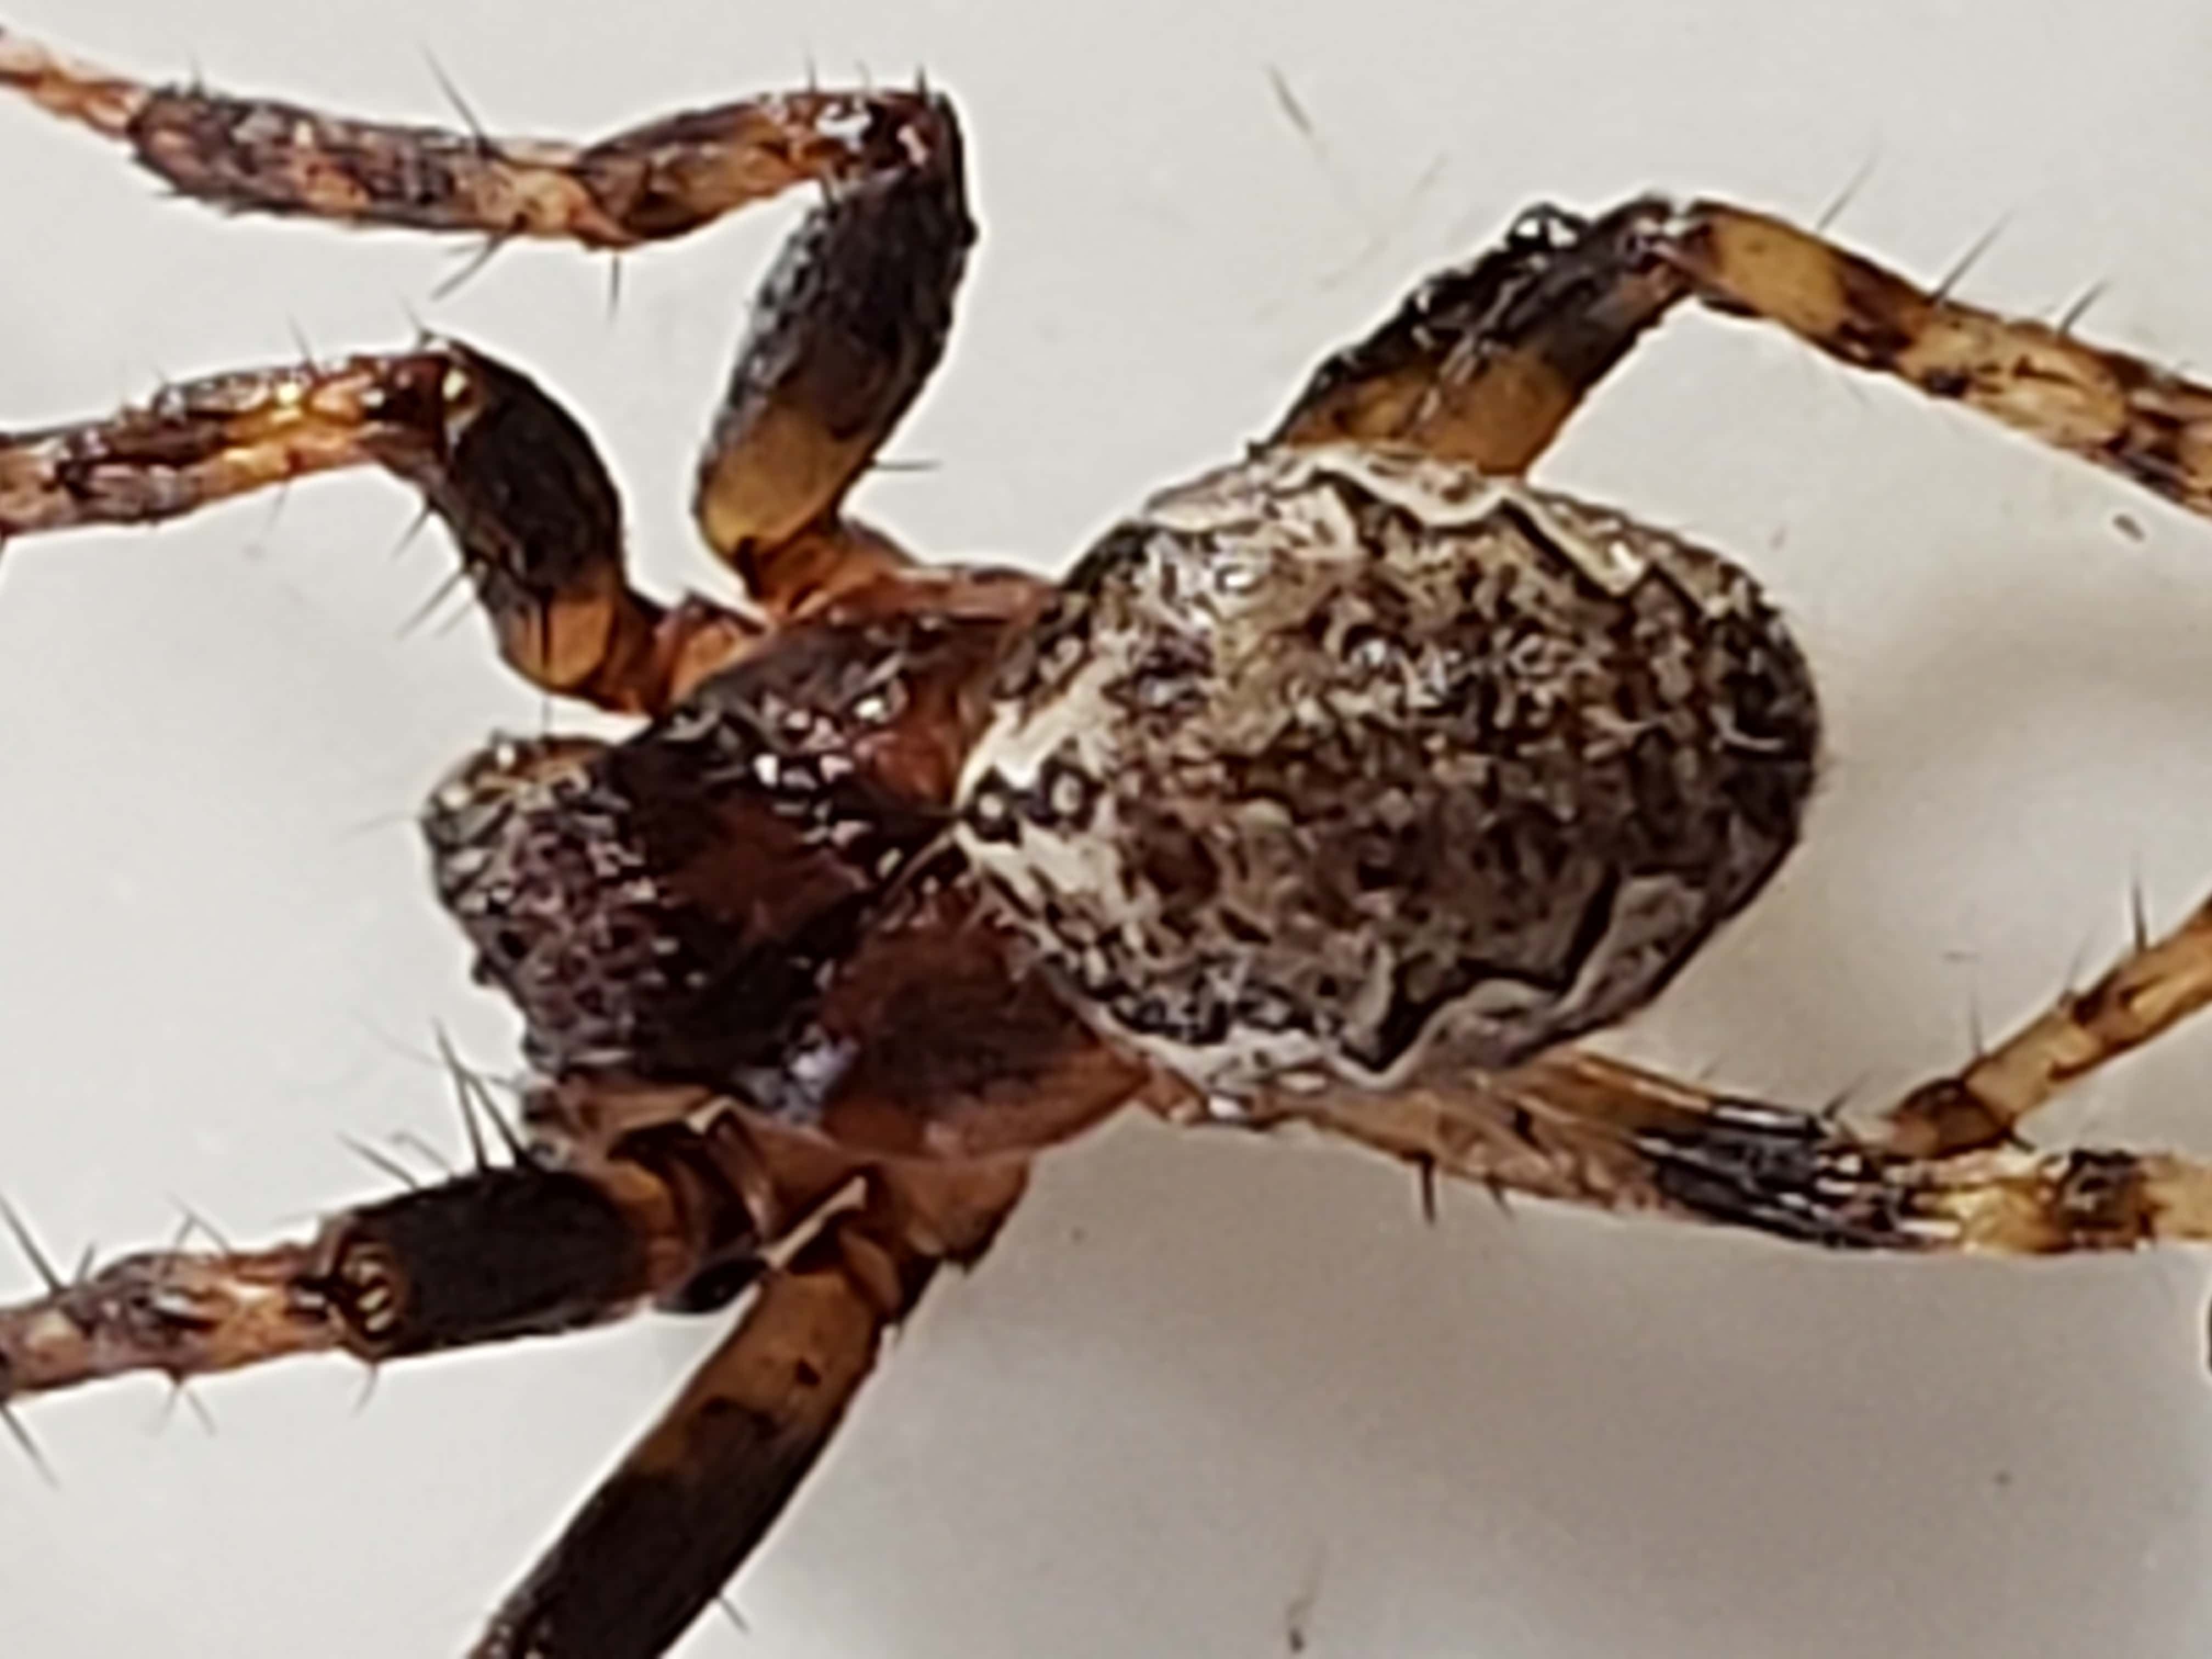 Picture of Larinioides (Furrow Spiders) - Dorsal